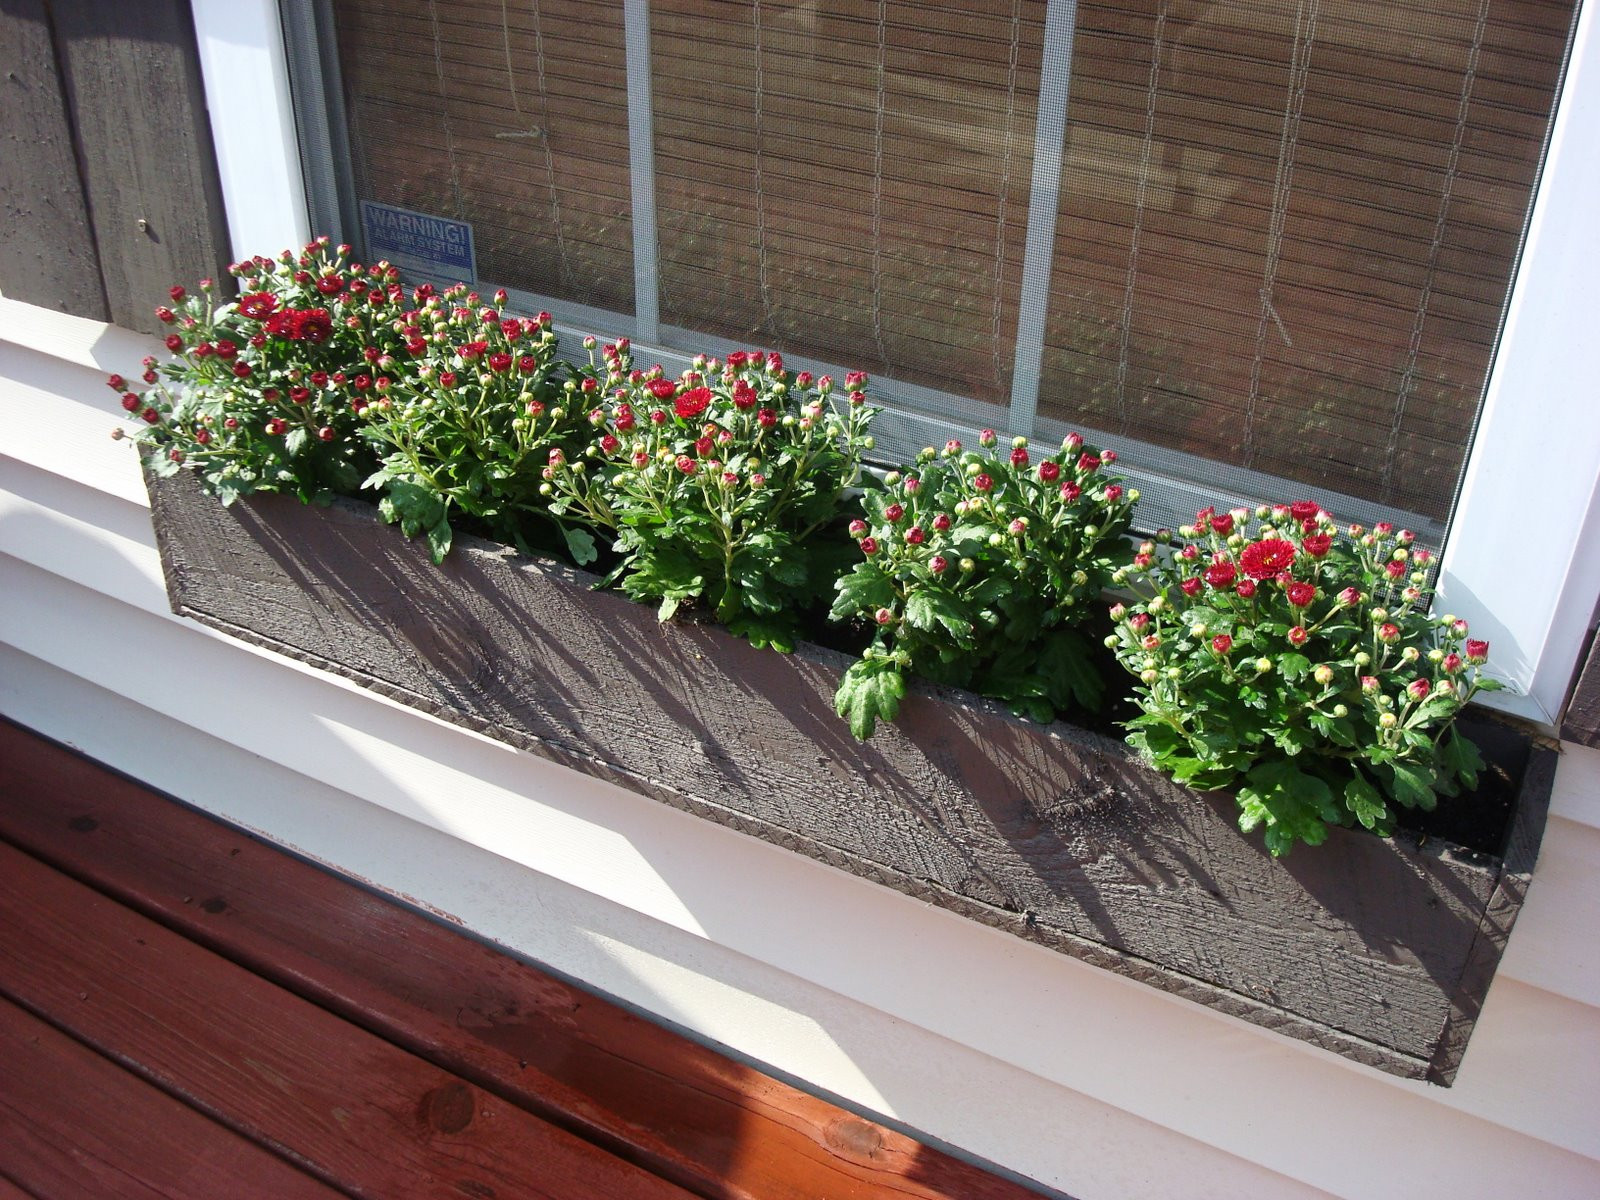 Best ideas about DIY Window Planter Box . Save or Pin 12 Gorgeous DIY Window Box Planters Now.